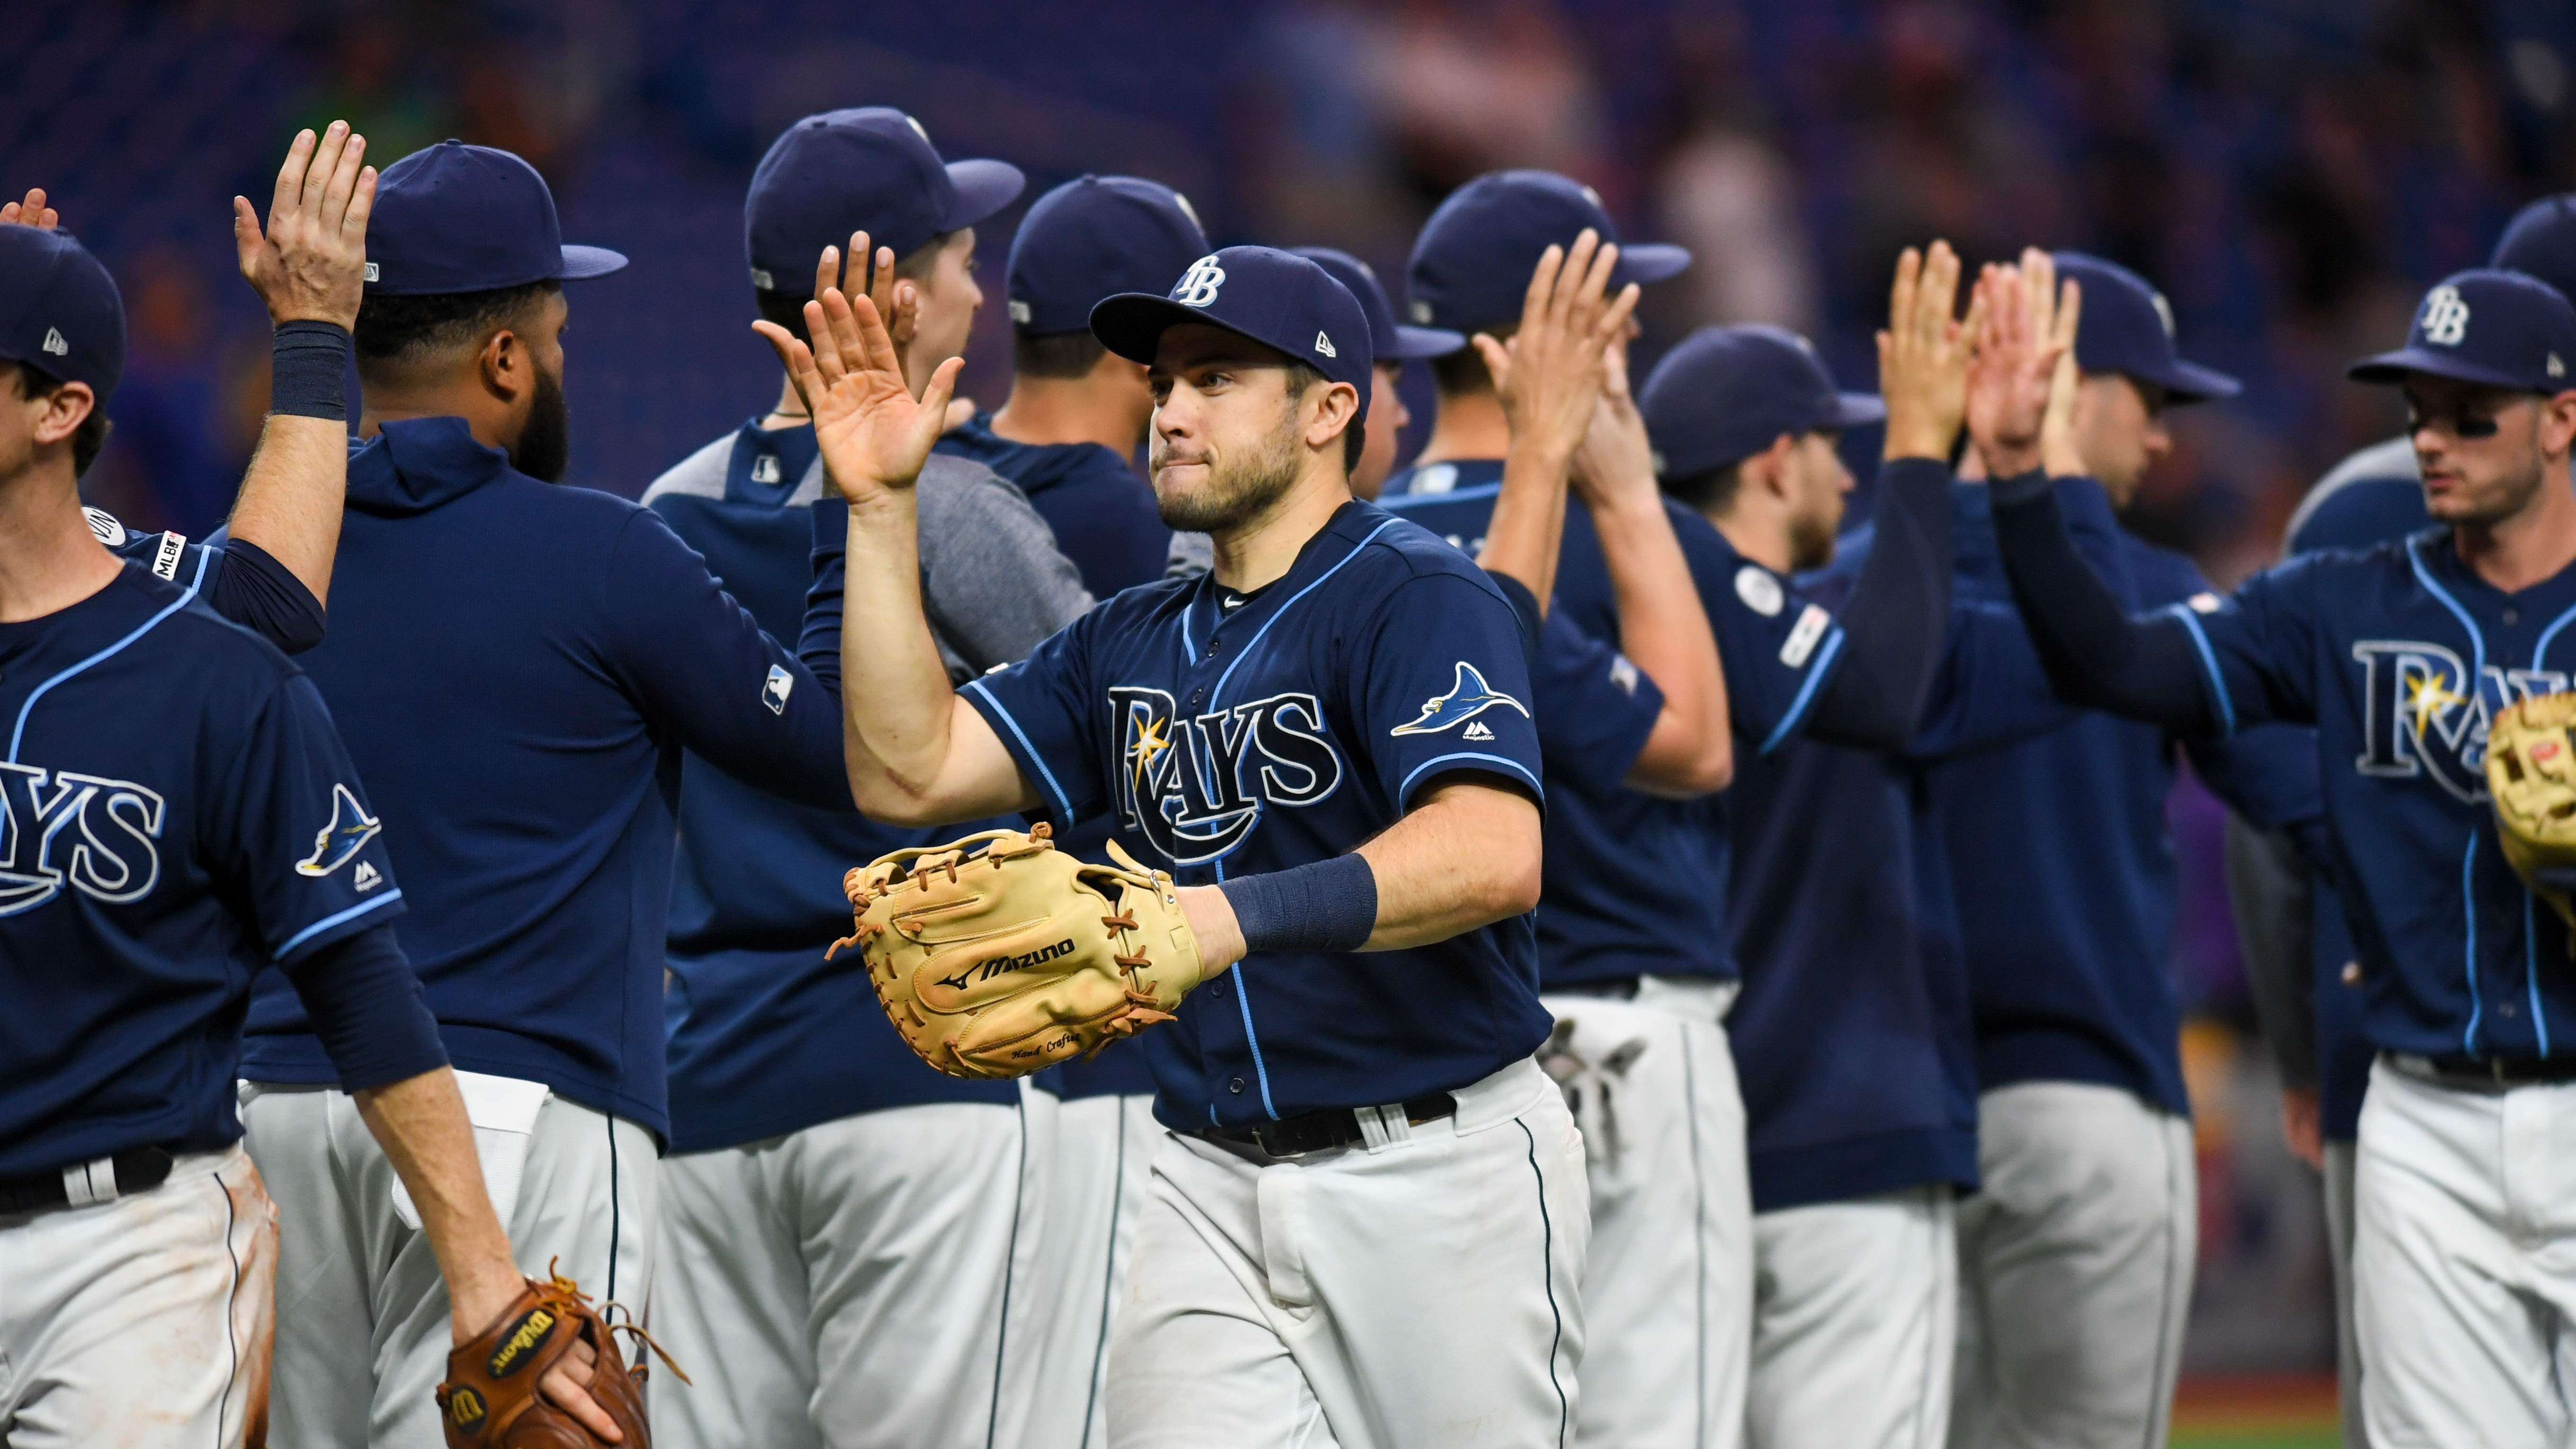 Here's how to watch the Rays play tonight, only on YouTube